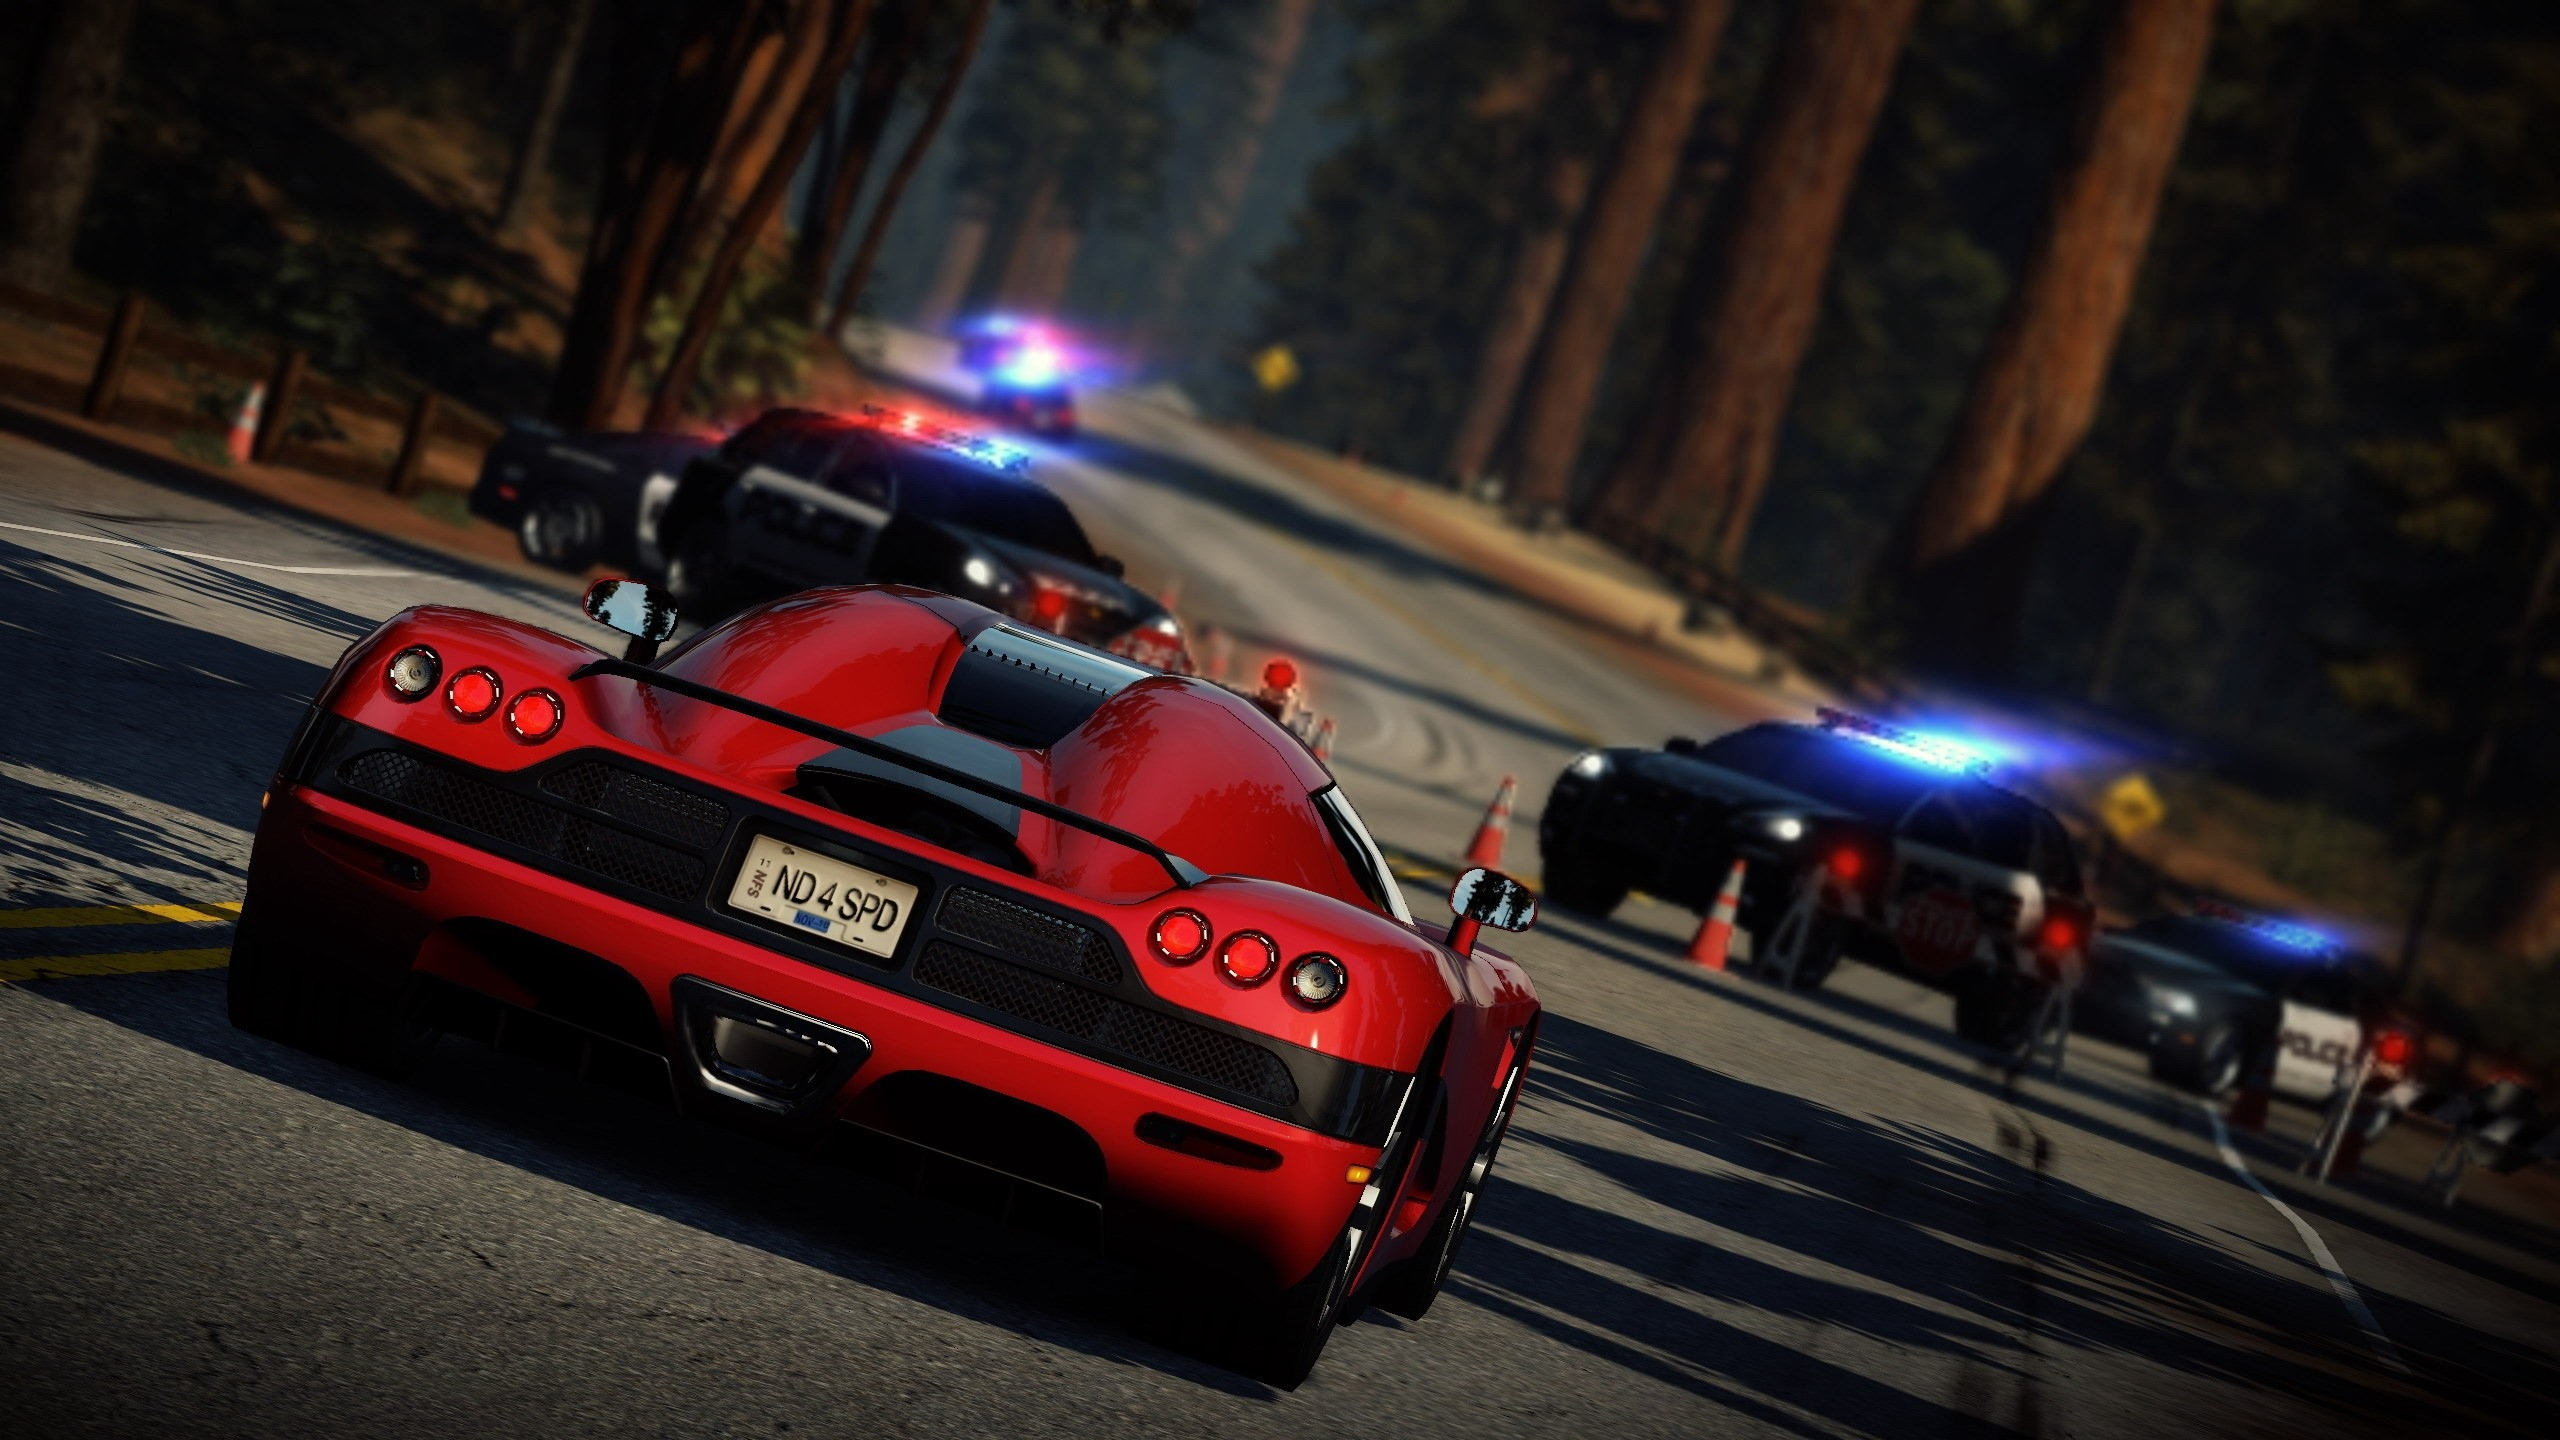 Download wallpaper 2560x1440 nfs need for speed car pocile 2560x1440